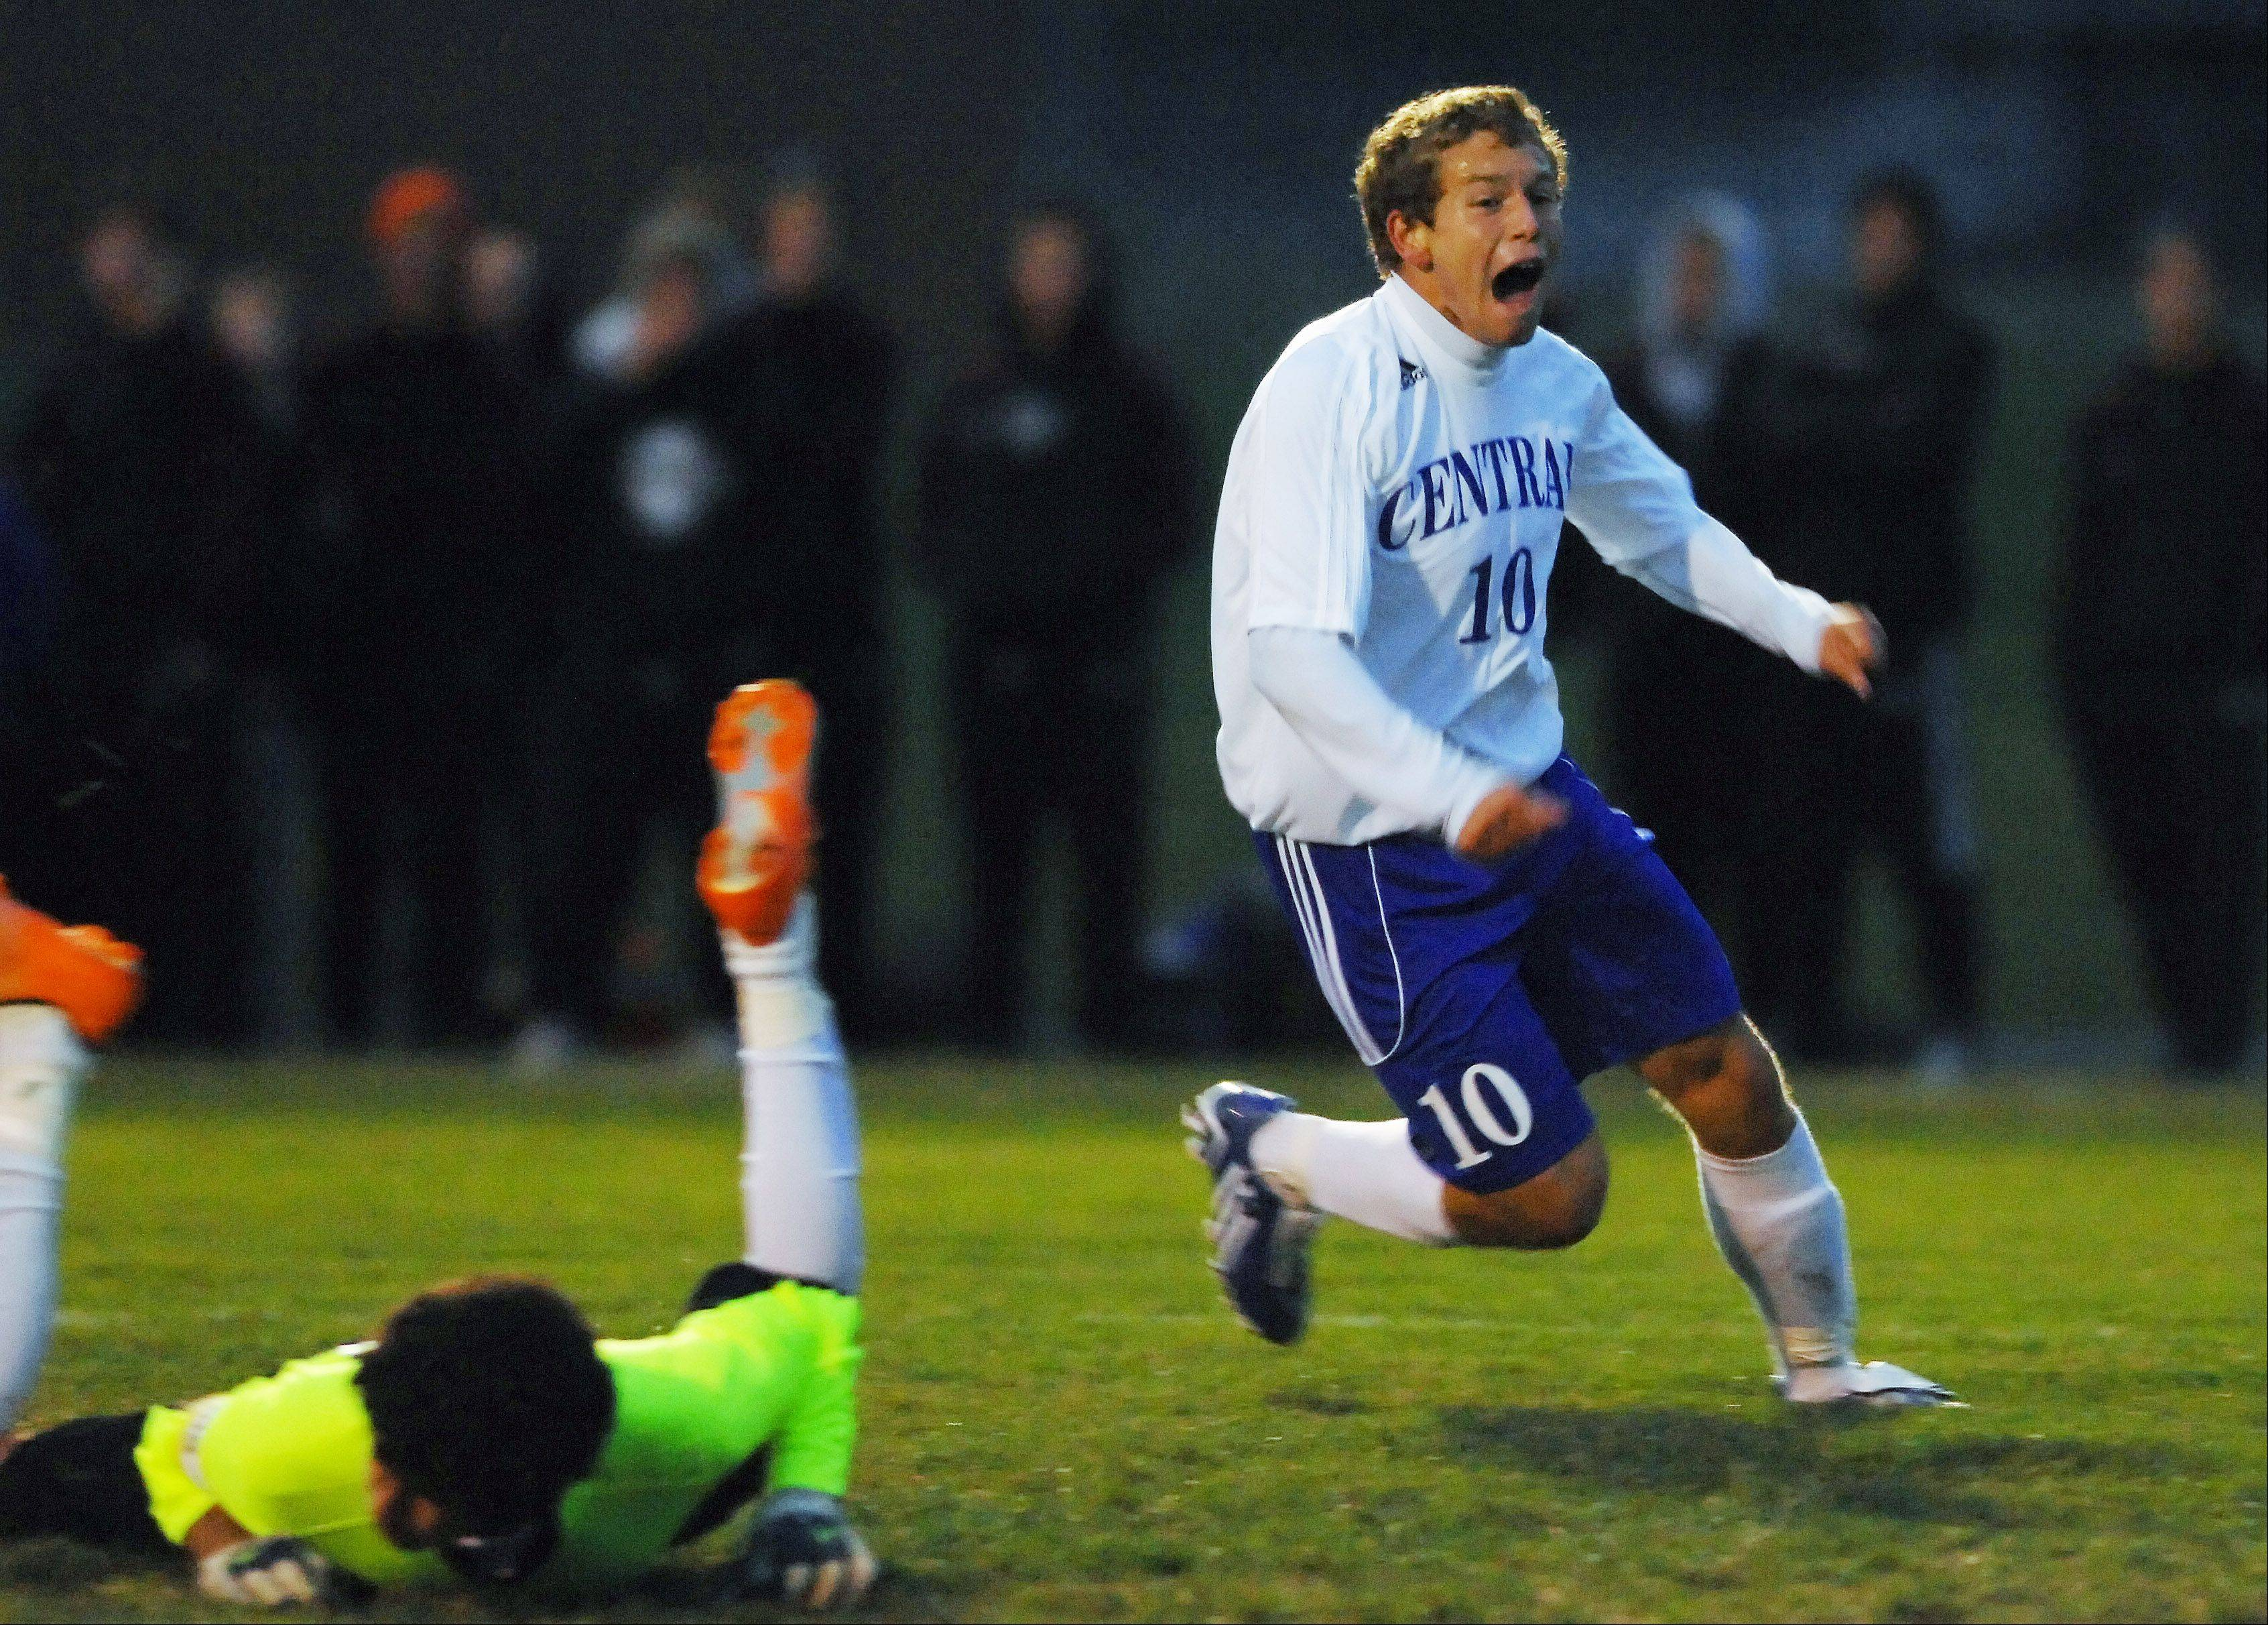 Burlington Central's Chris Gousios celebrates a goal in front of Marengo goalkeeper Sergio Orozco during the Hampshire soccer regional game Tuesday. It was Gousios' first of three goals.